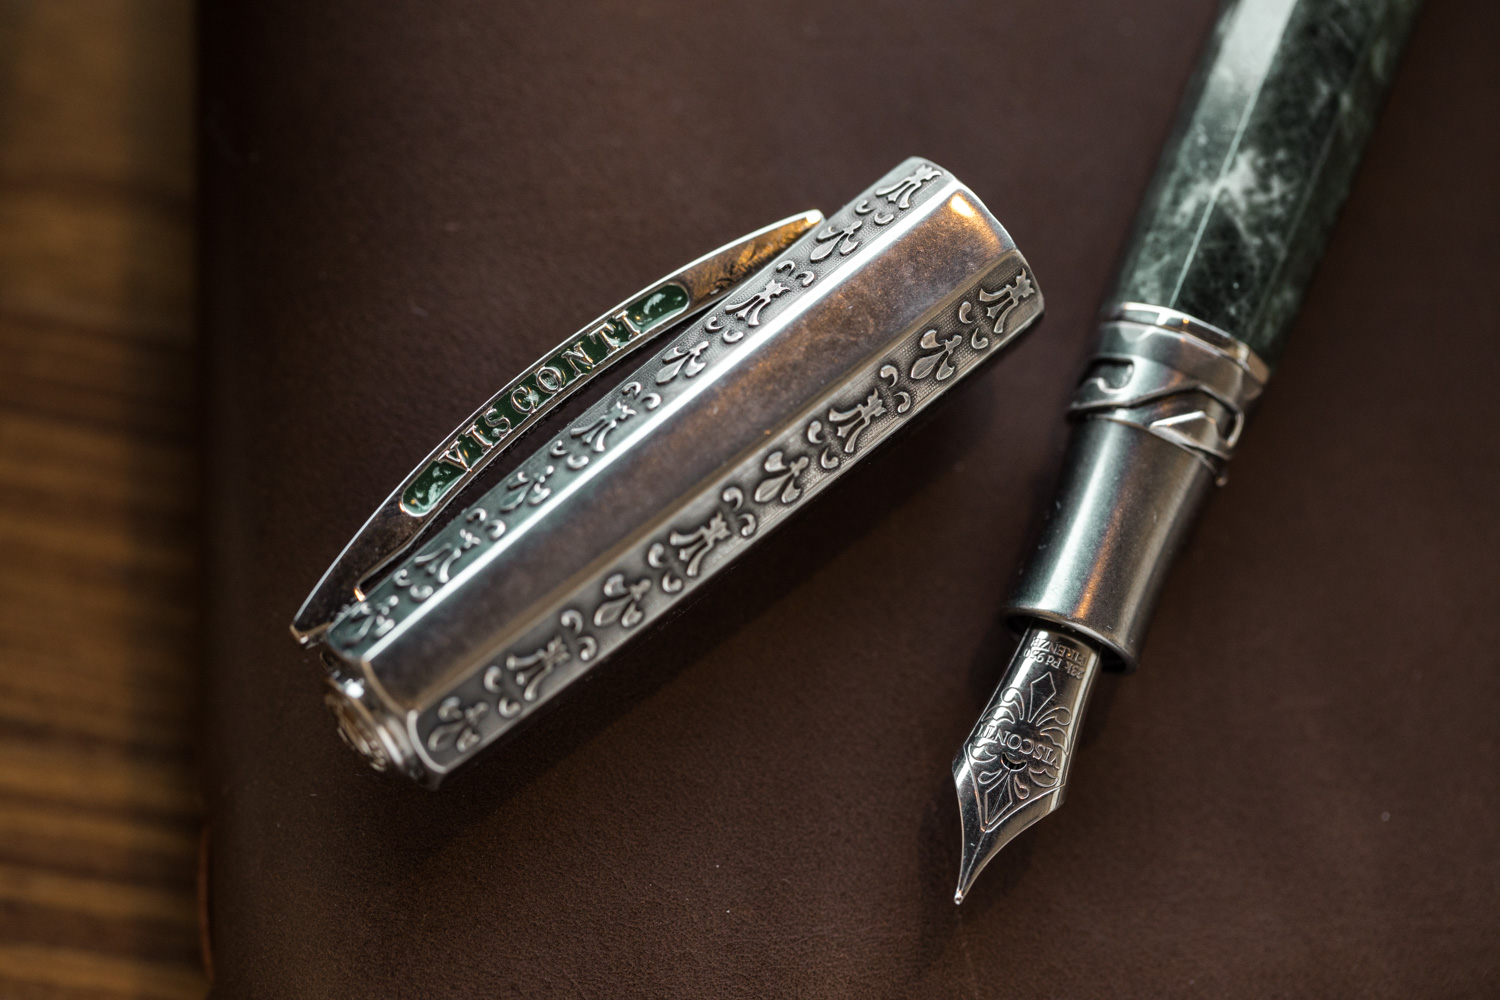 Visconti-IlMagnifico-Serpentine-LE-6.jpg